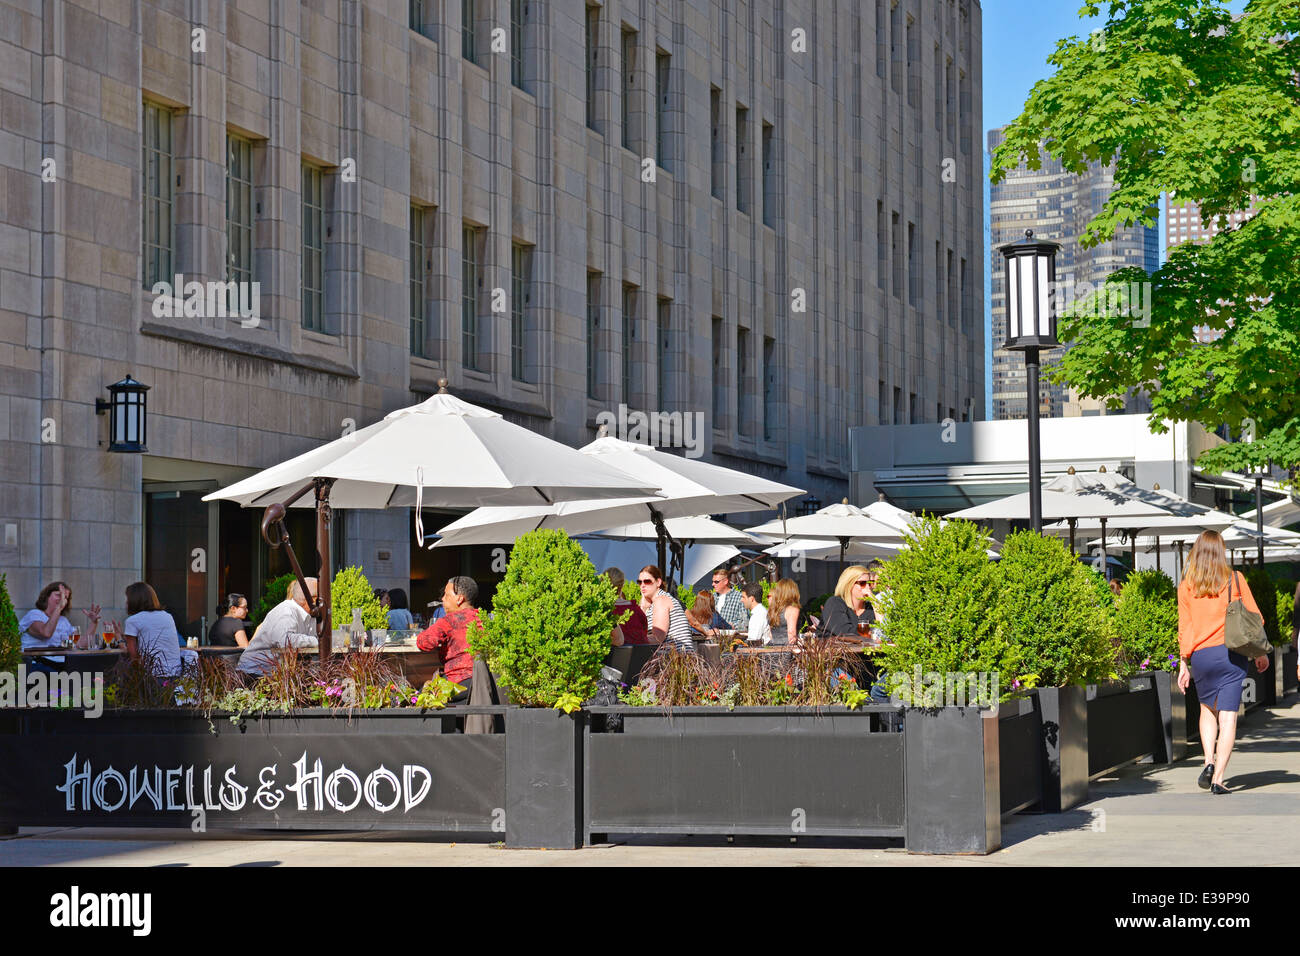 Howells and Hood outdoor dining on Michigan Avenue in downtown Chicago, Illinois, USA Stock Photo